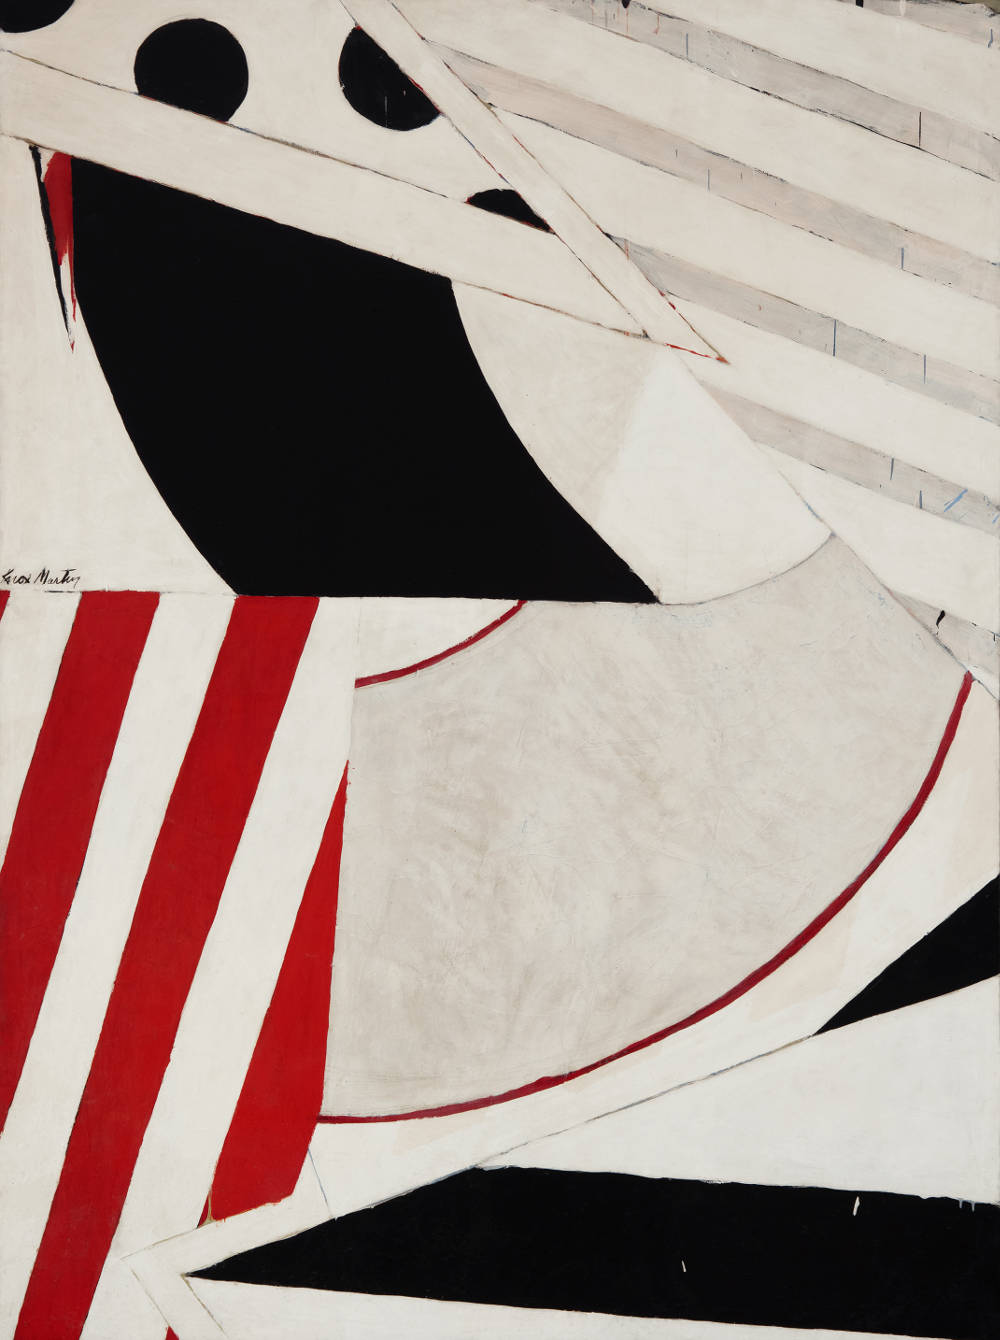 Knox Martin (b. 1923), Shape Shifter, 1962. Signed center left: Knox Martin. Inscription on stretcher verso. Magna acrylic on canvas 92 x 69 inches